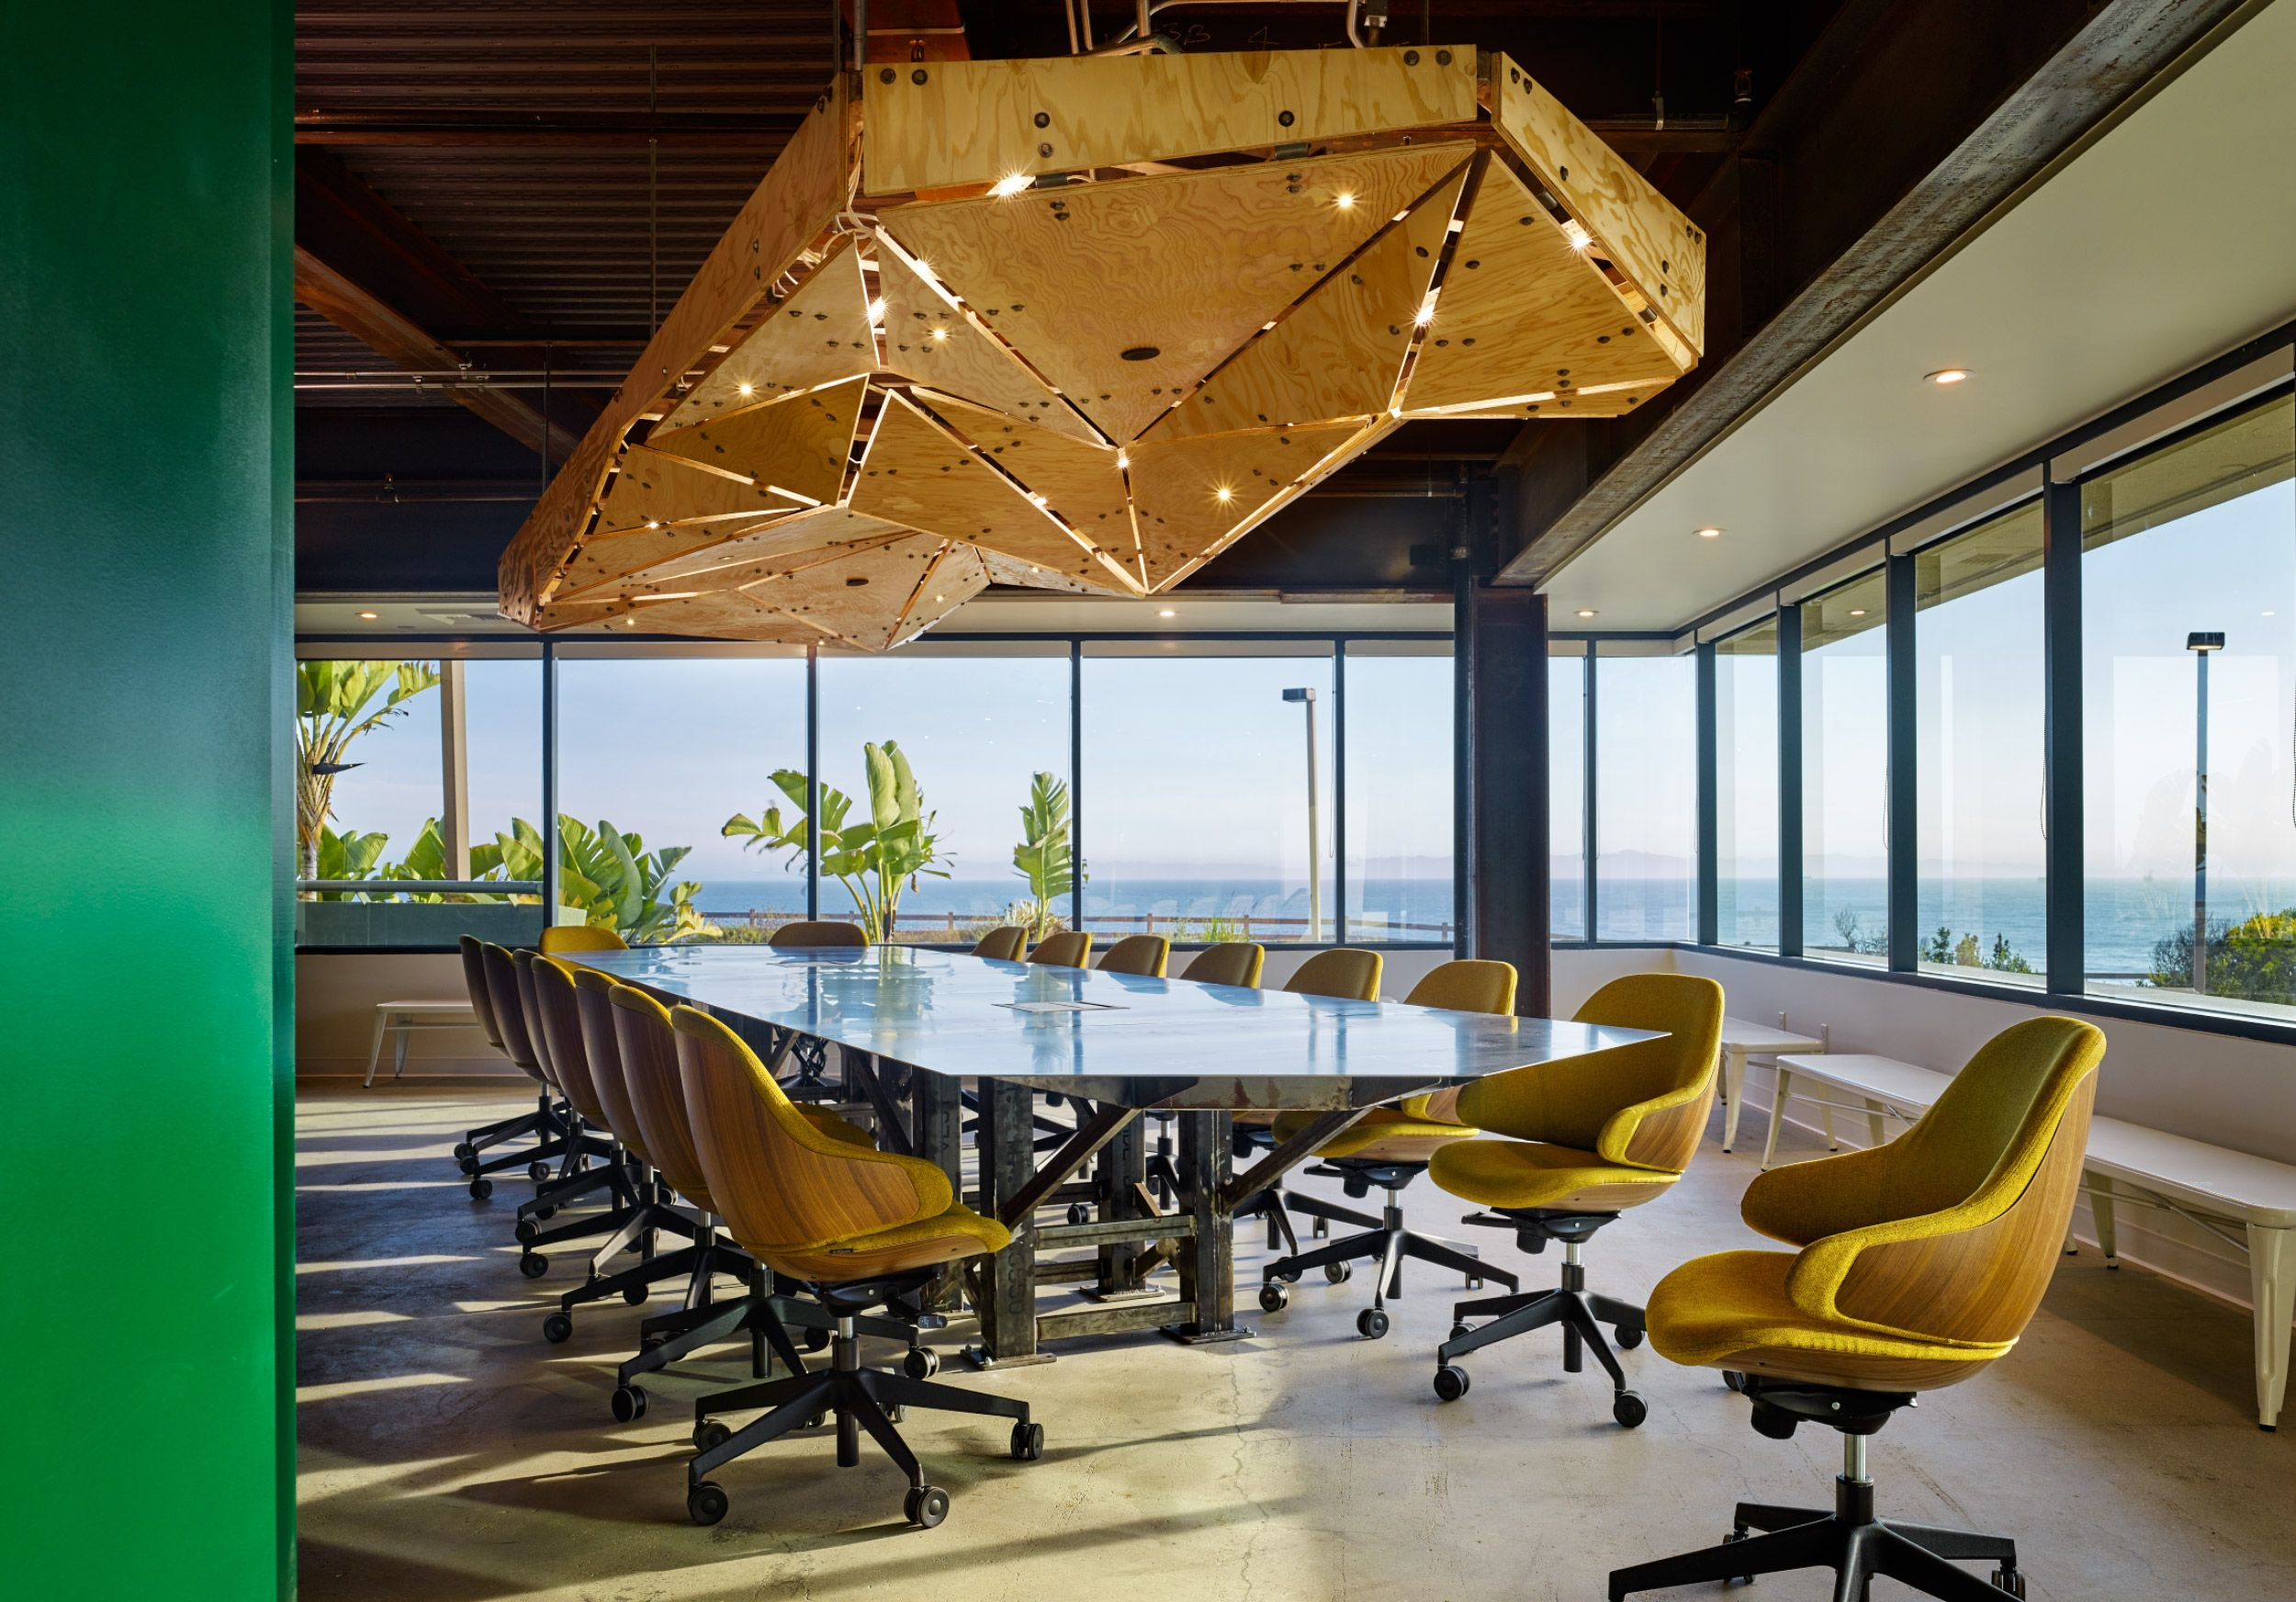 Suspended table by berstein architects - Kingdom Industry Architectural Design For Procore Plywood Clouds Over A Custom Steel Conference Room